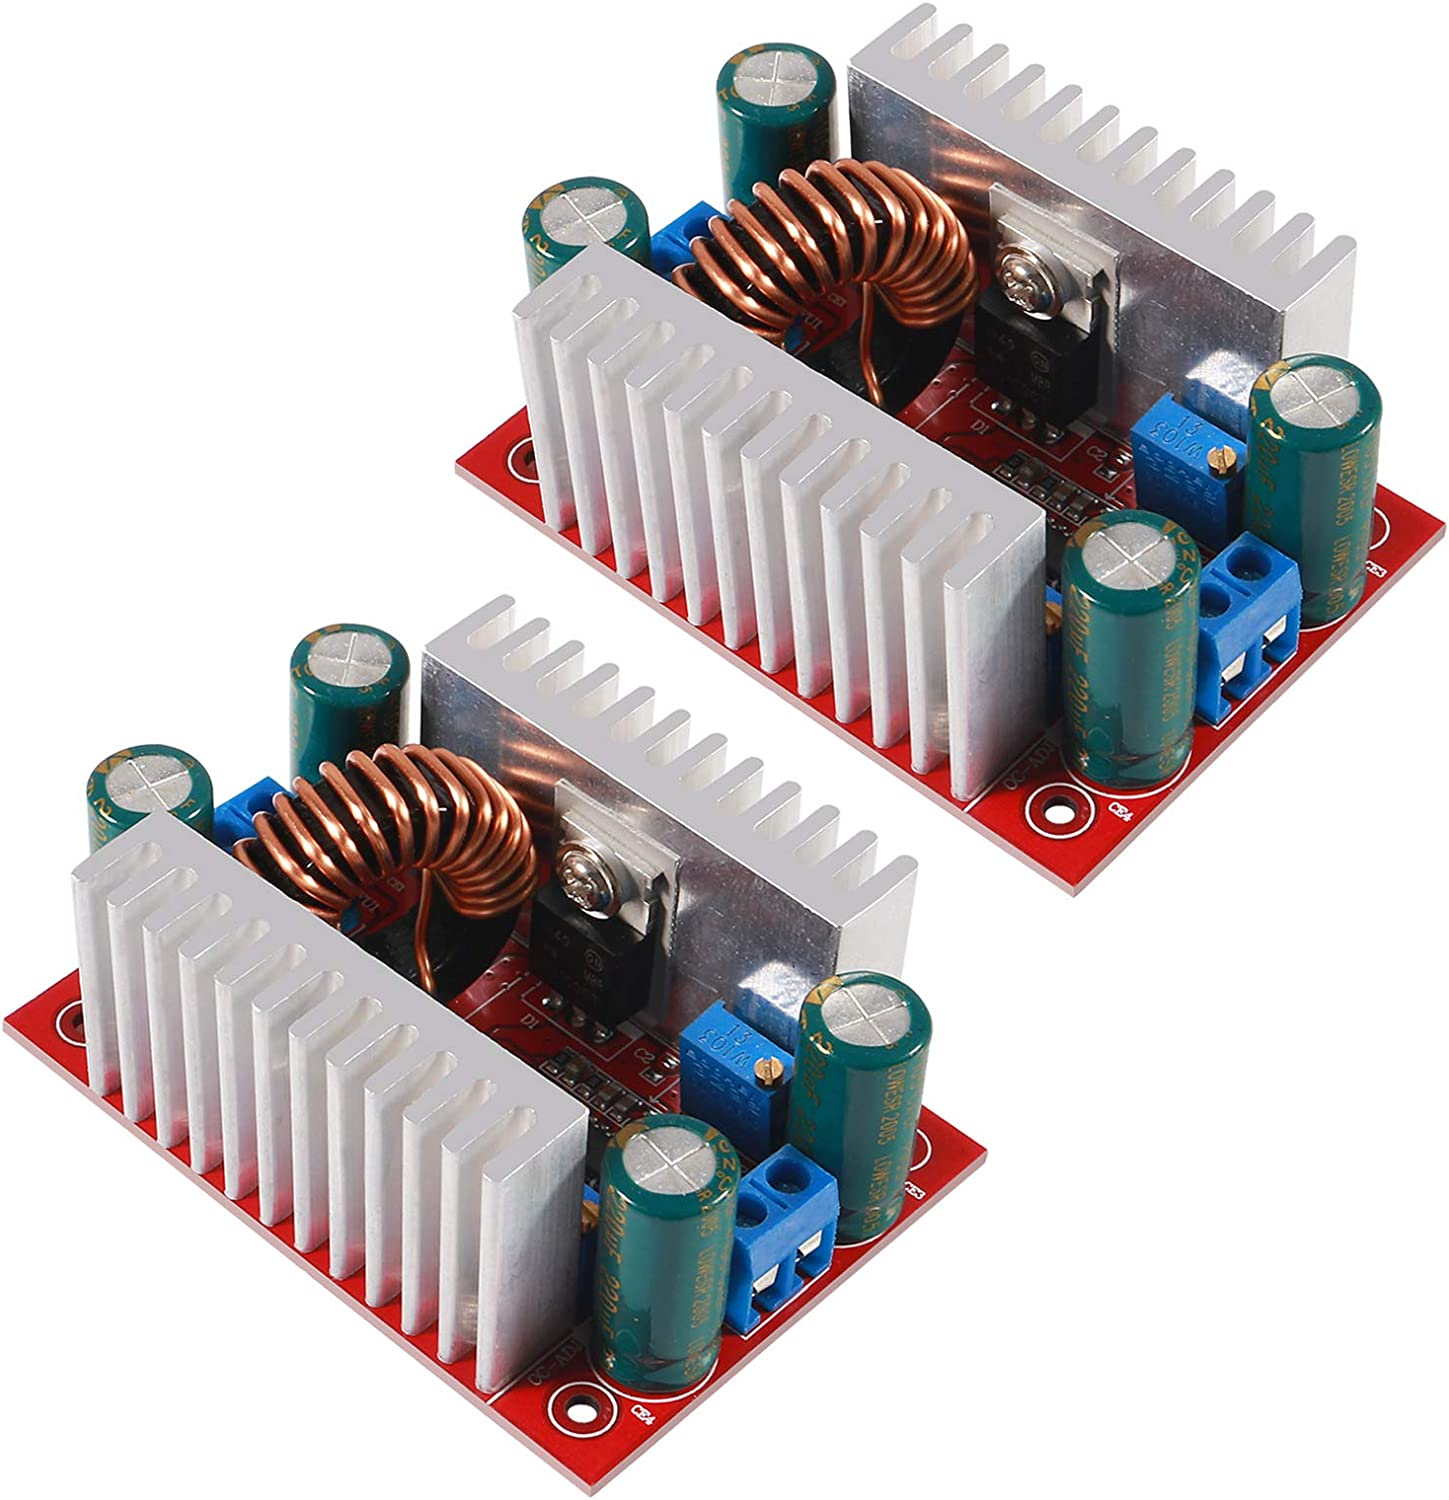 AITRIP 2PCS DC 400W 15A Step-up Boost Converter Constant Current Power Supply LED Driver 8.5-50V to 10-60V Voltage Charger Step Up Module for Electric Equipment and Digital Products